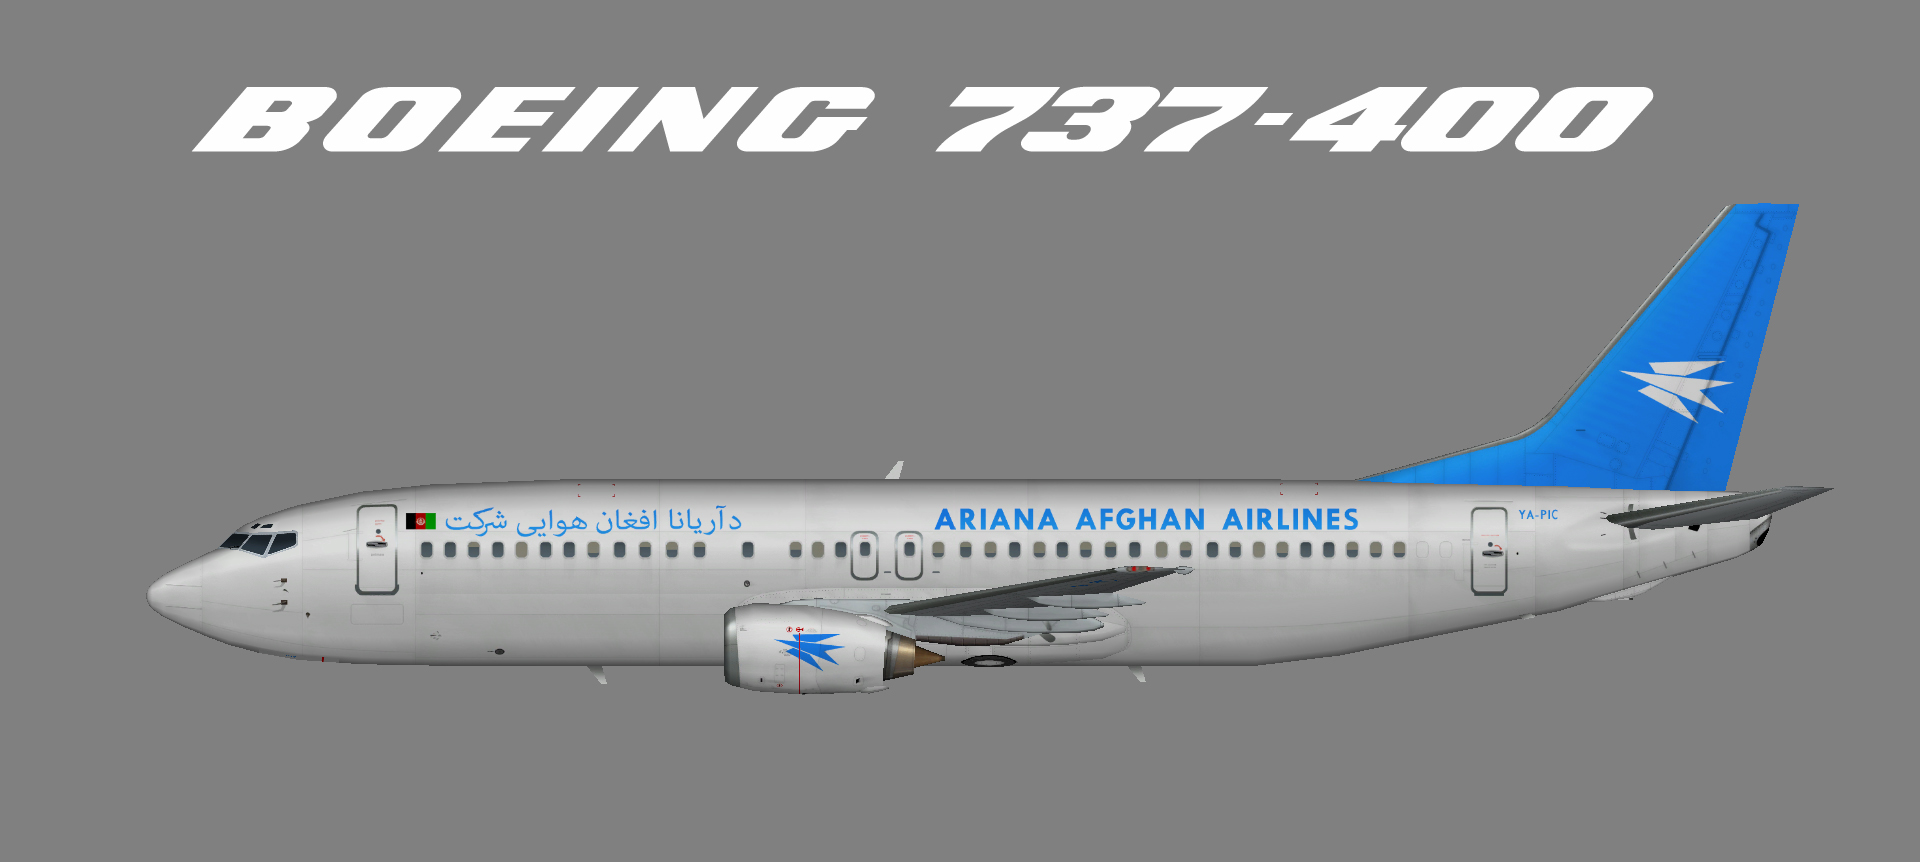 Ariana Afghan Airlines Boeing 737-400